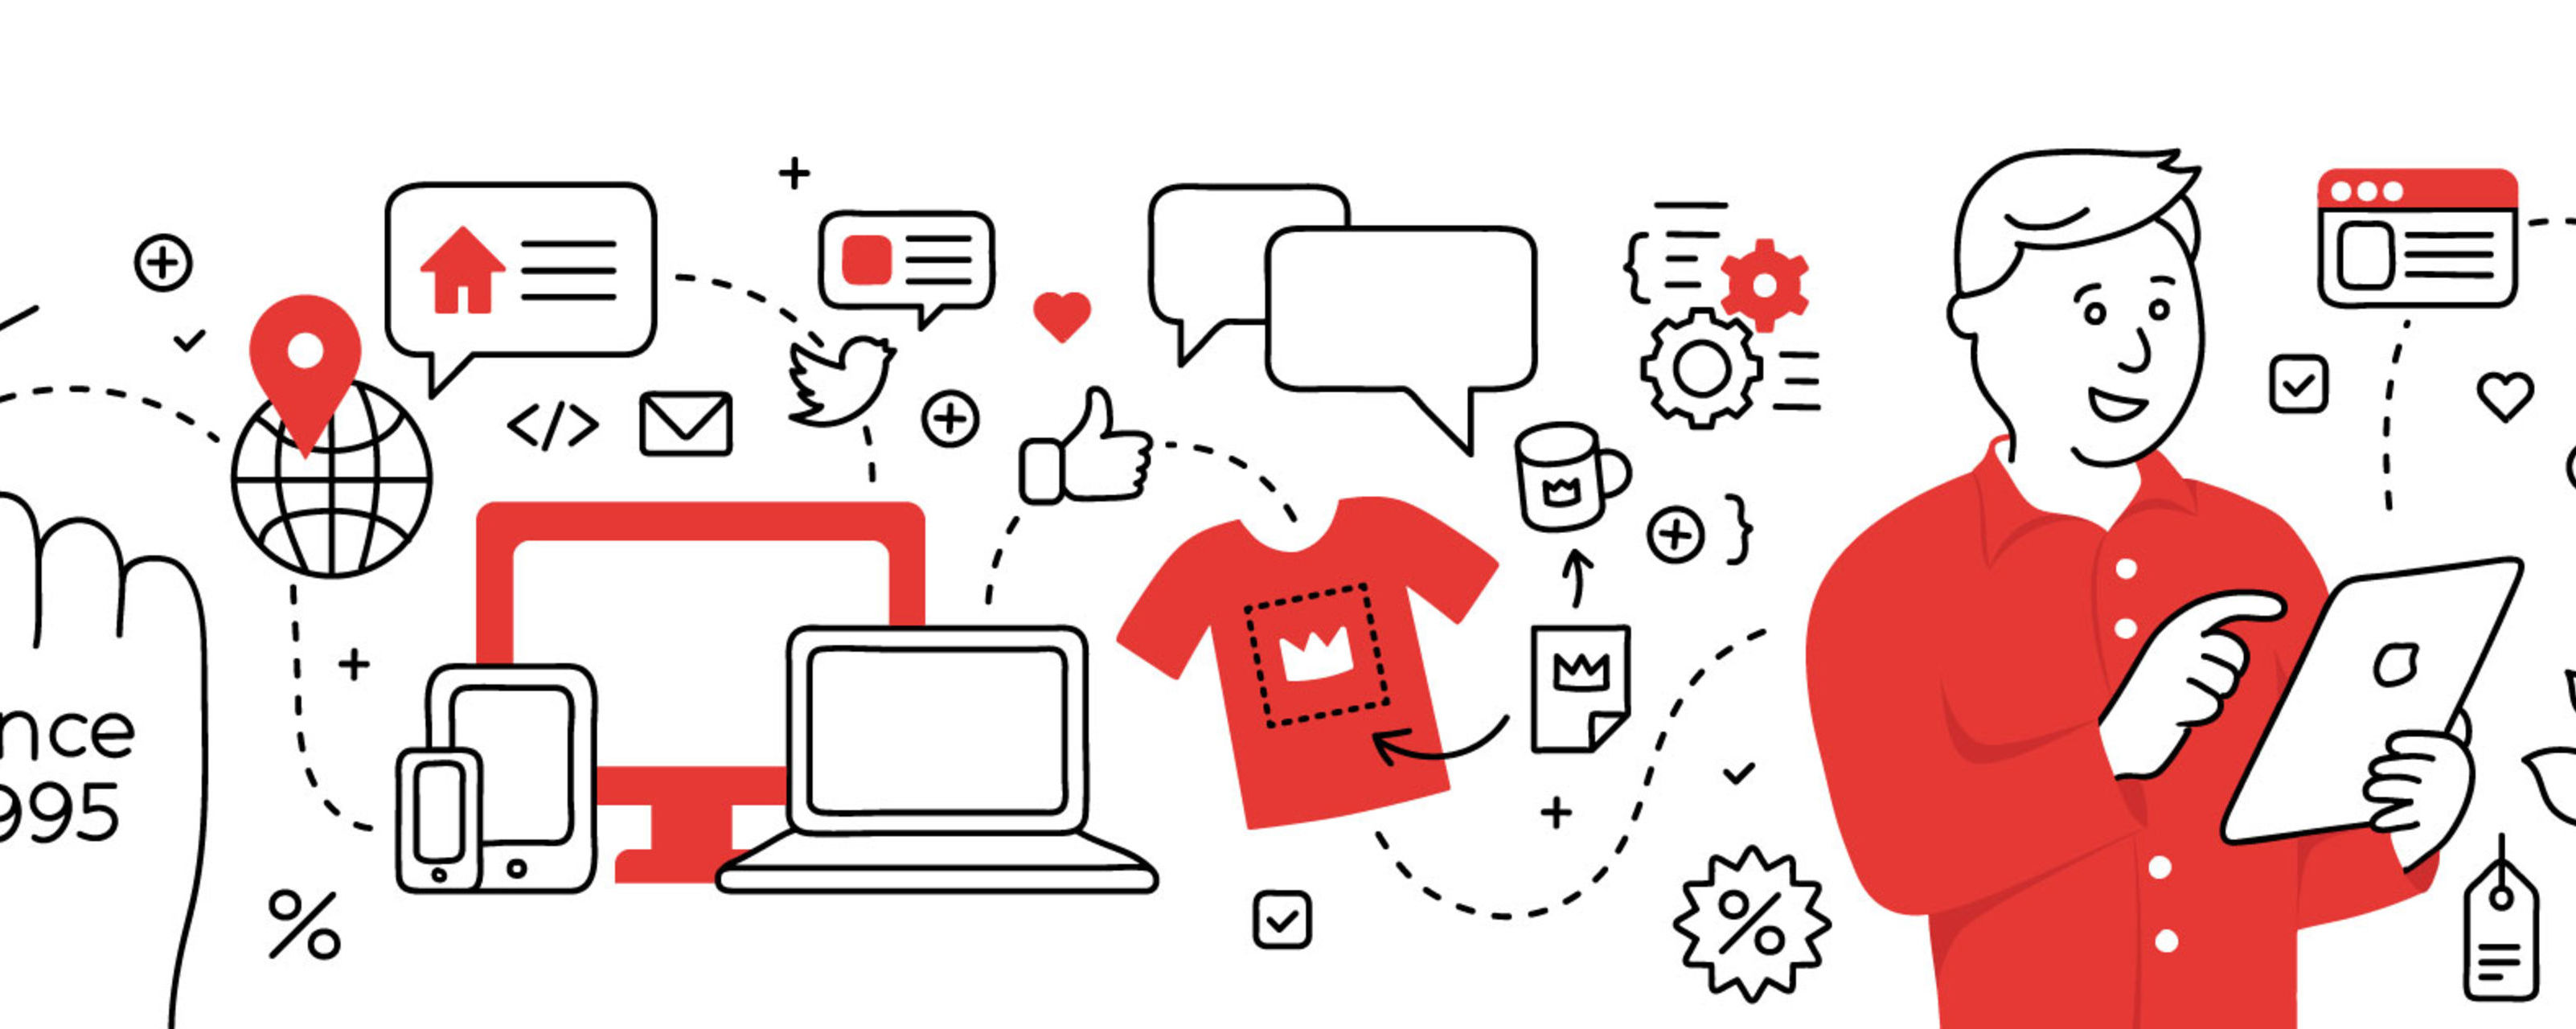 Brick + Google = Perfect Partners